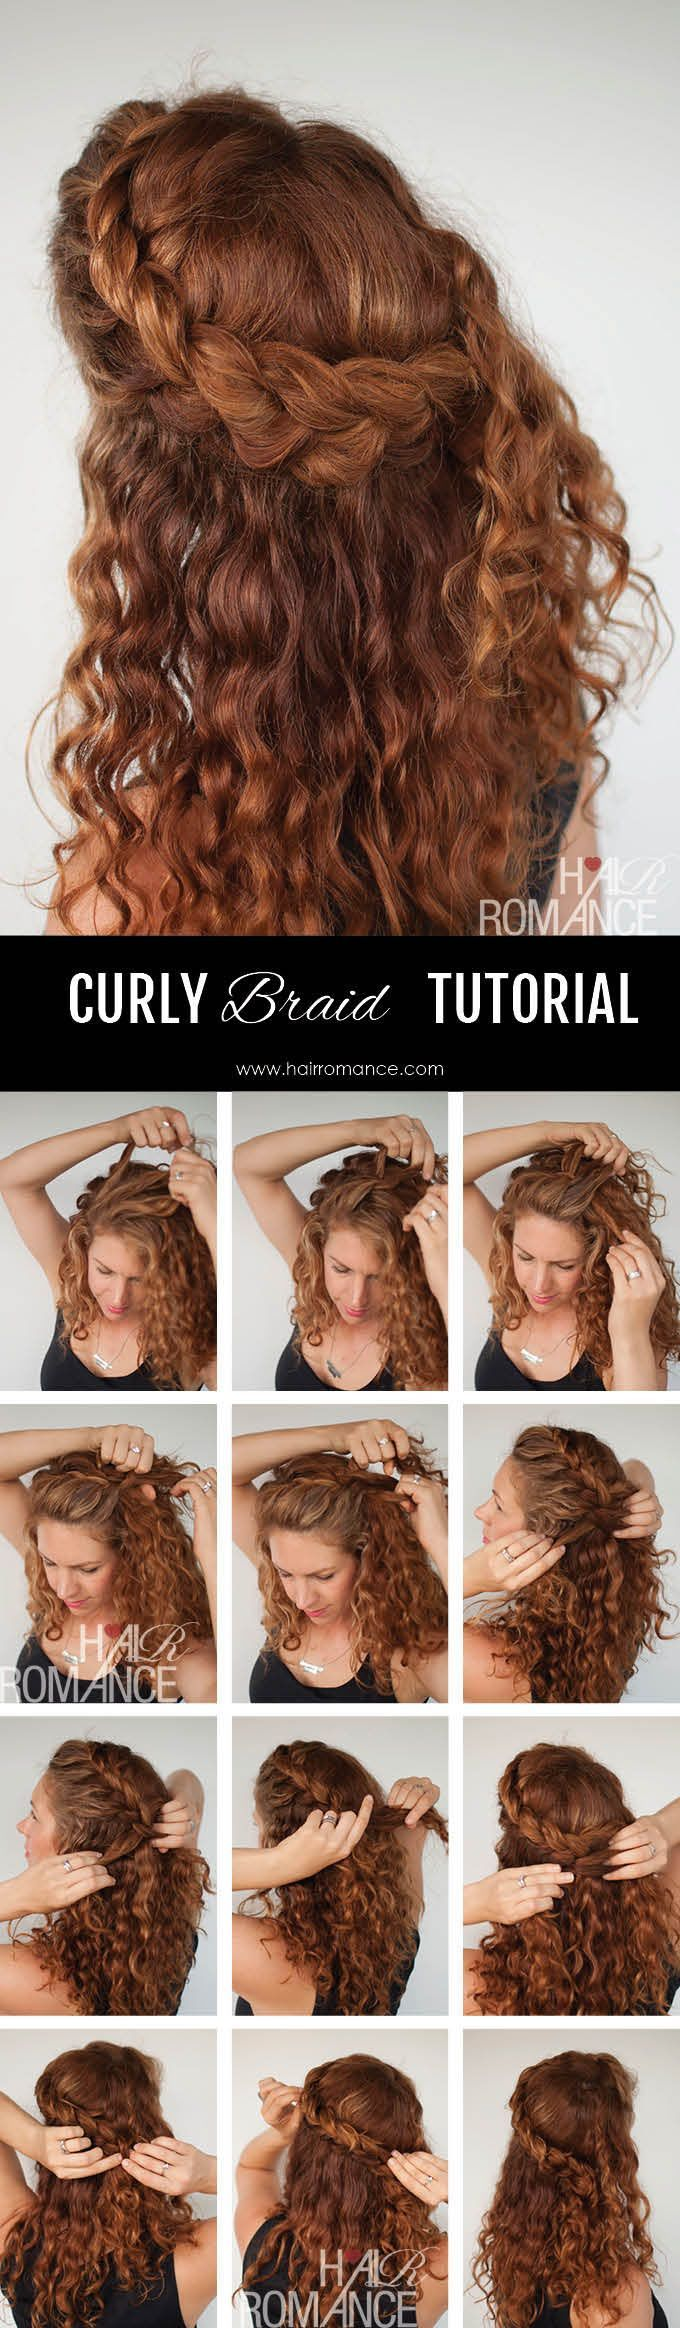 Curly hair styles easy hairstyles for curly hair